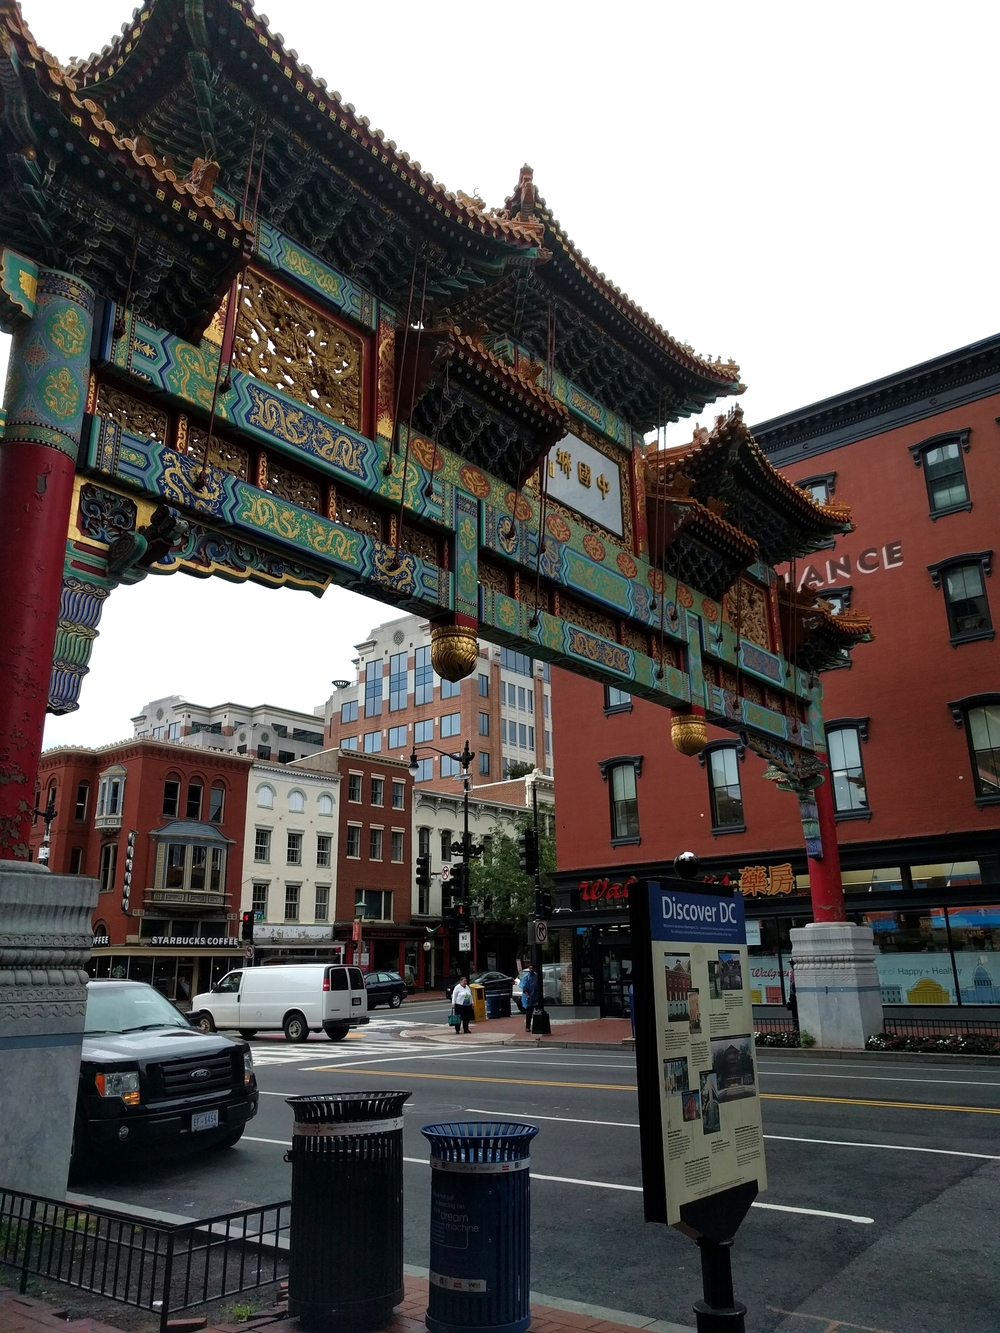 This is the entrance to Chinatown. We saw it when we came up from the metro and thought it was so cool!